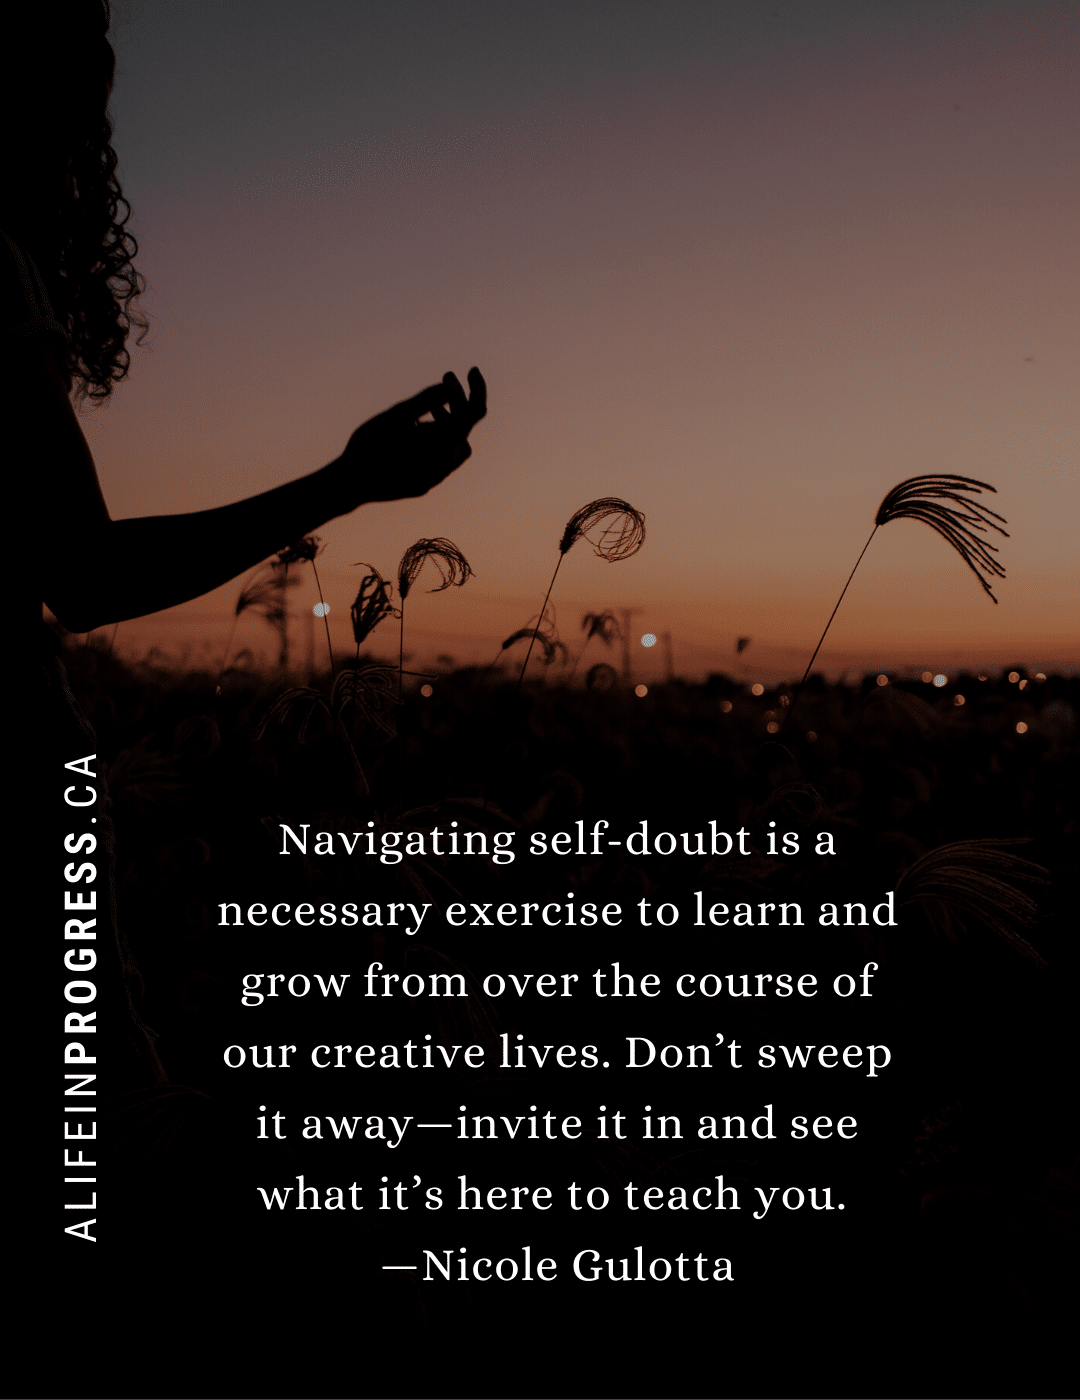 """Silhouette of woman in field with this self-doubt quote, """"Navigating self-doubt is a necessary exercise to learn and grow from over the course of our creative lives. Don't sweep it away—invite it in and see what it's here to teach you."""""""